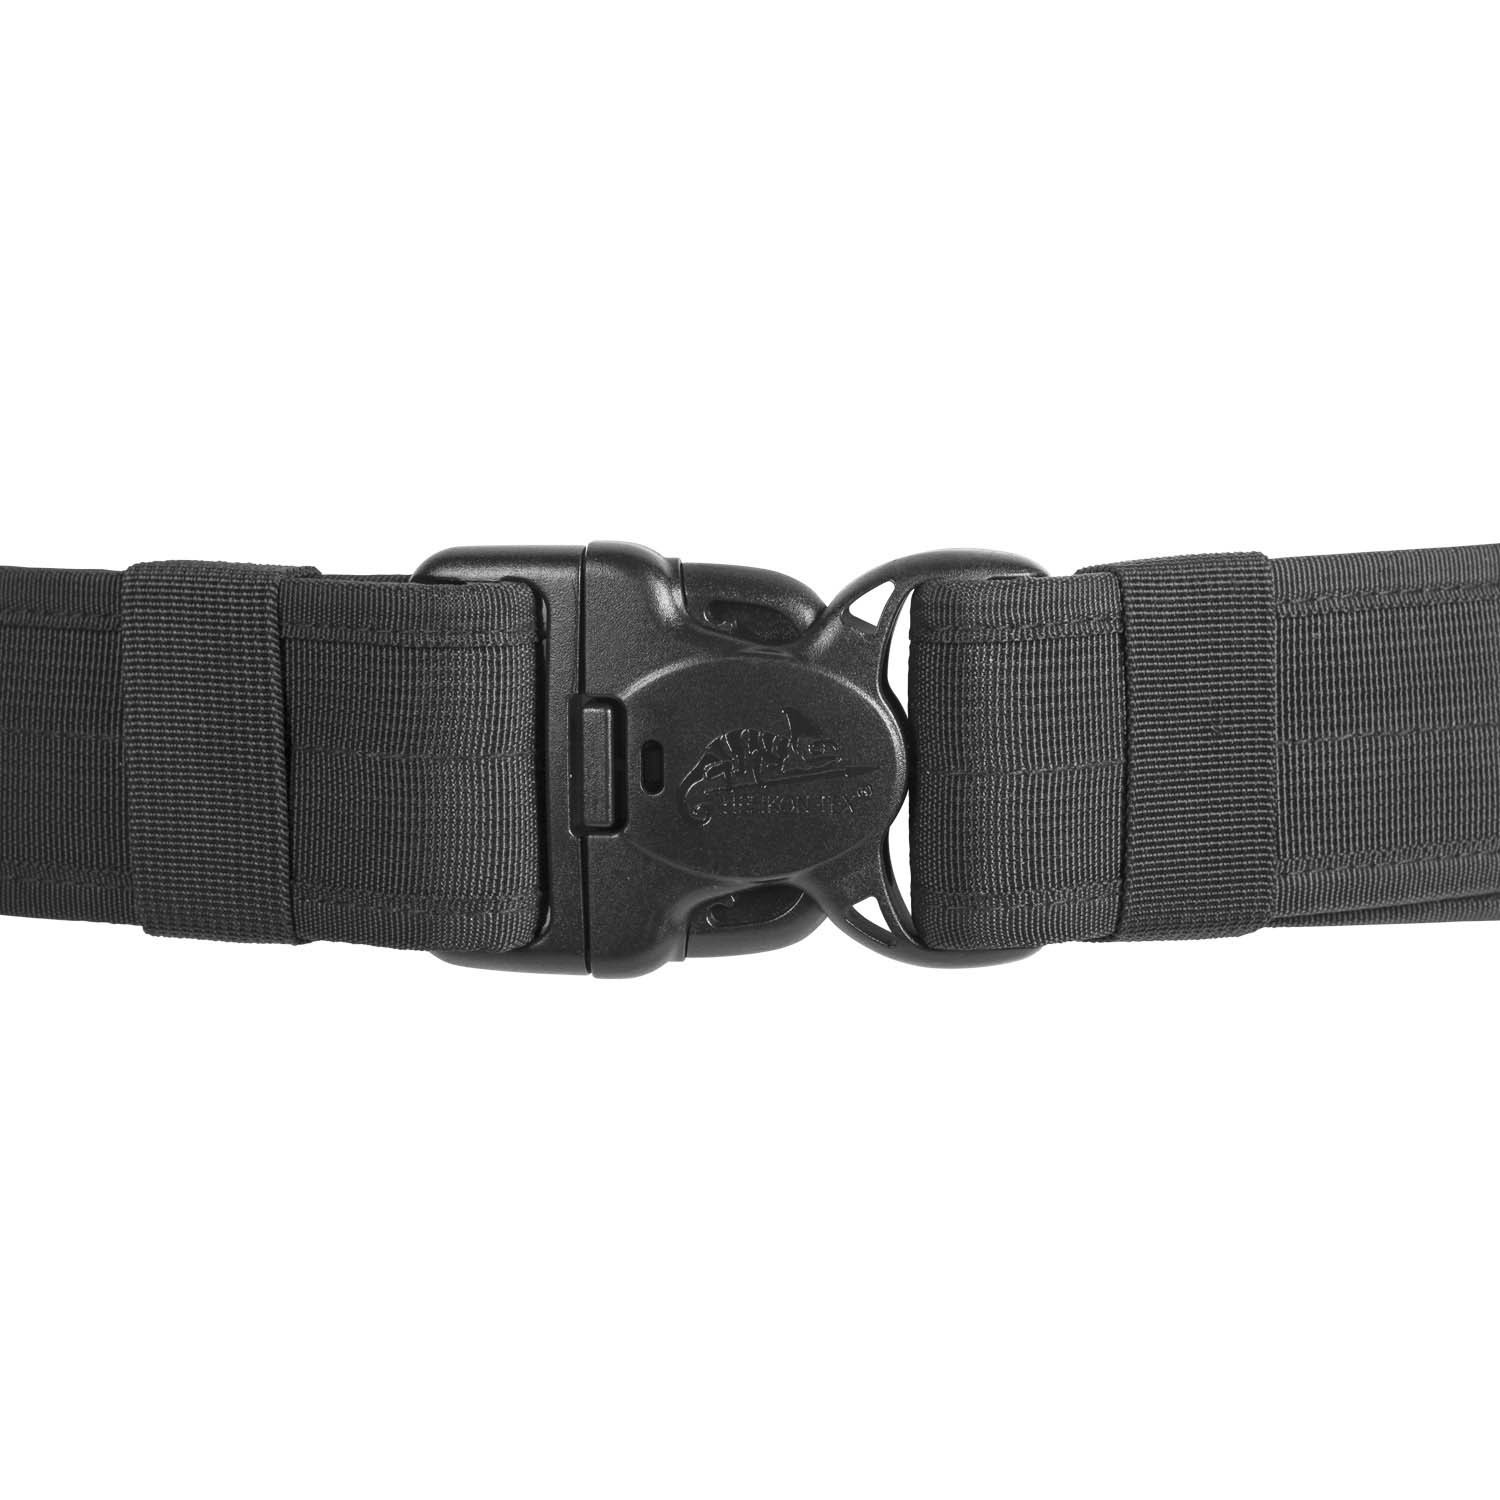 ps-def-nl-01_buckle_1.jpg